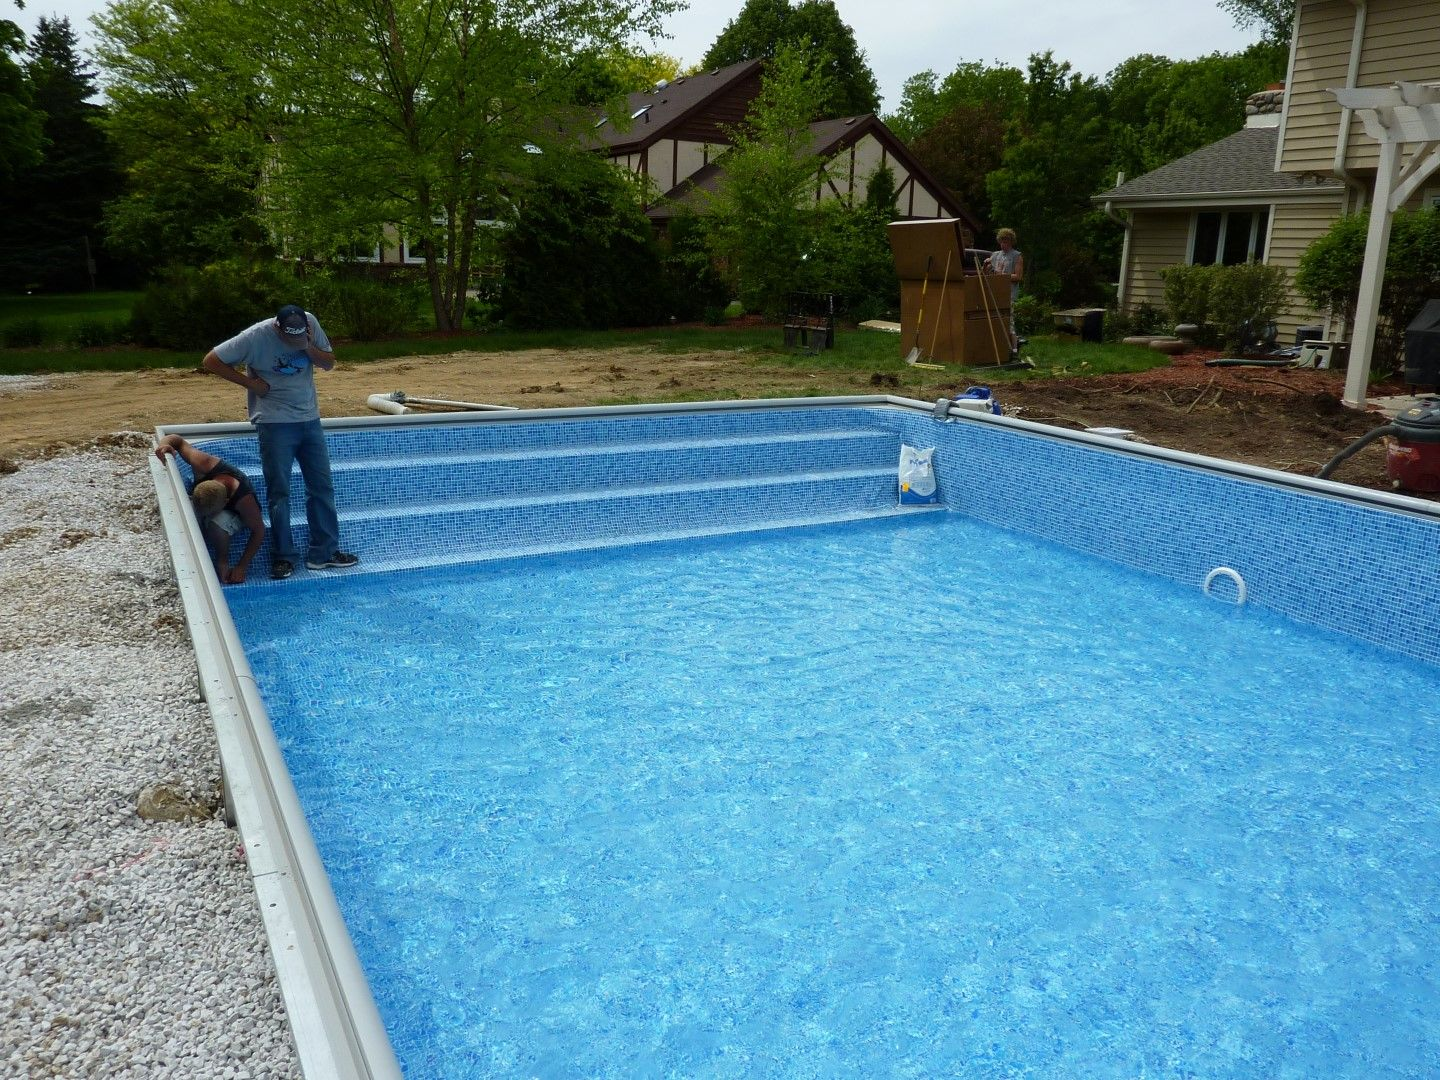 Fiberglass Pool Ideas small modular swim spa fiberglass pools nj fiberglass inground pool Fiberglass Pool Steps Swimming Pool Steps